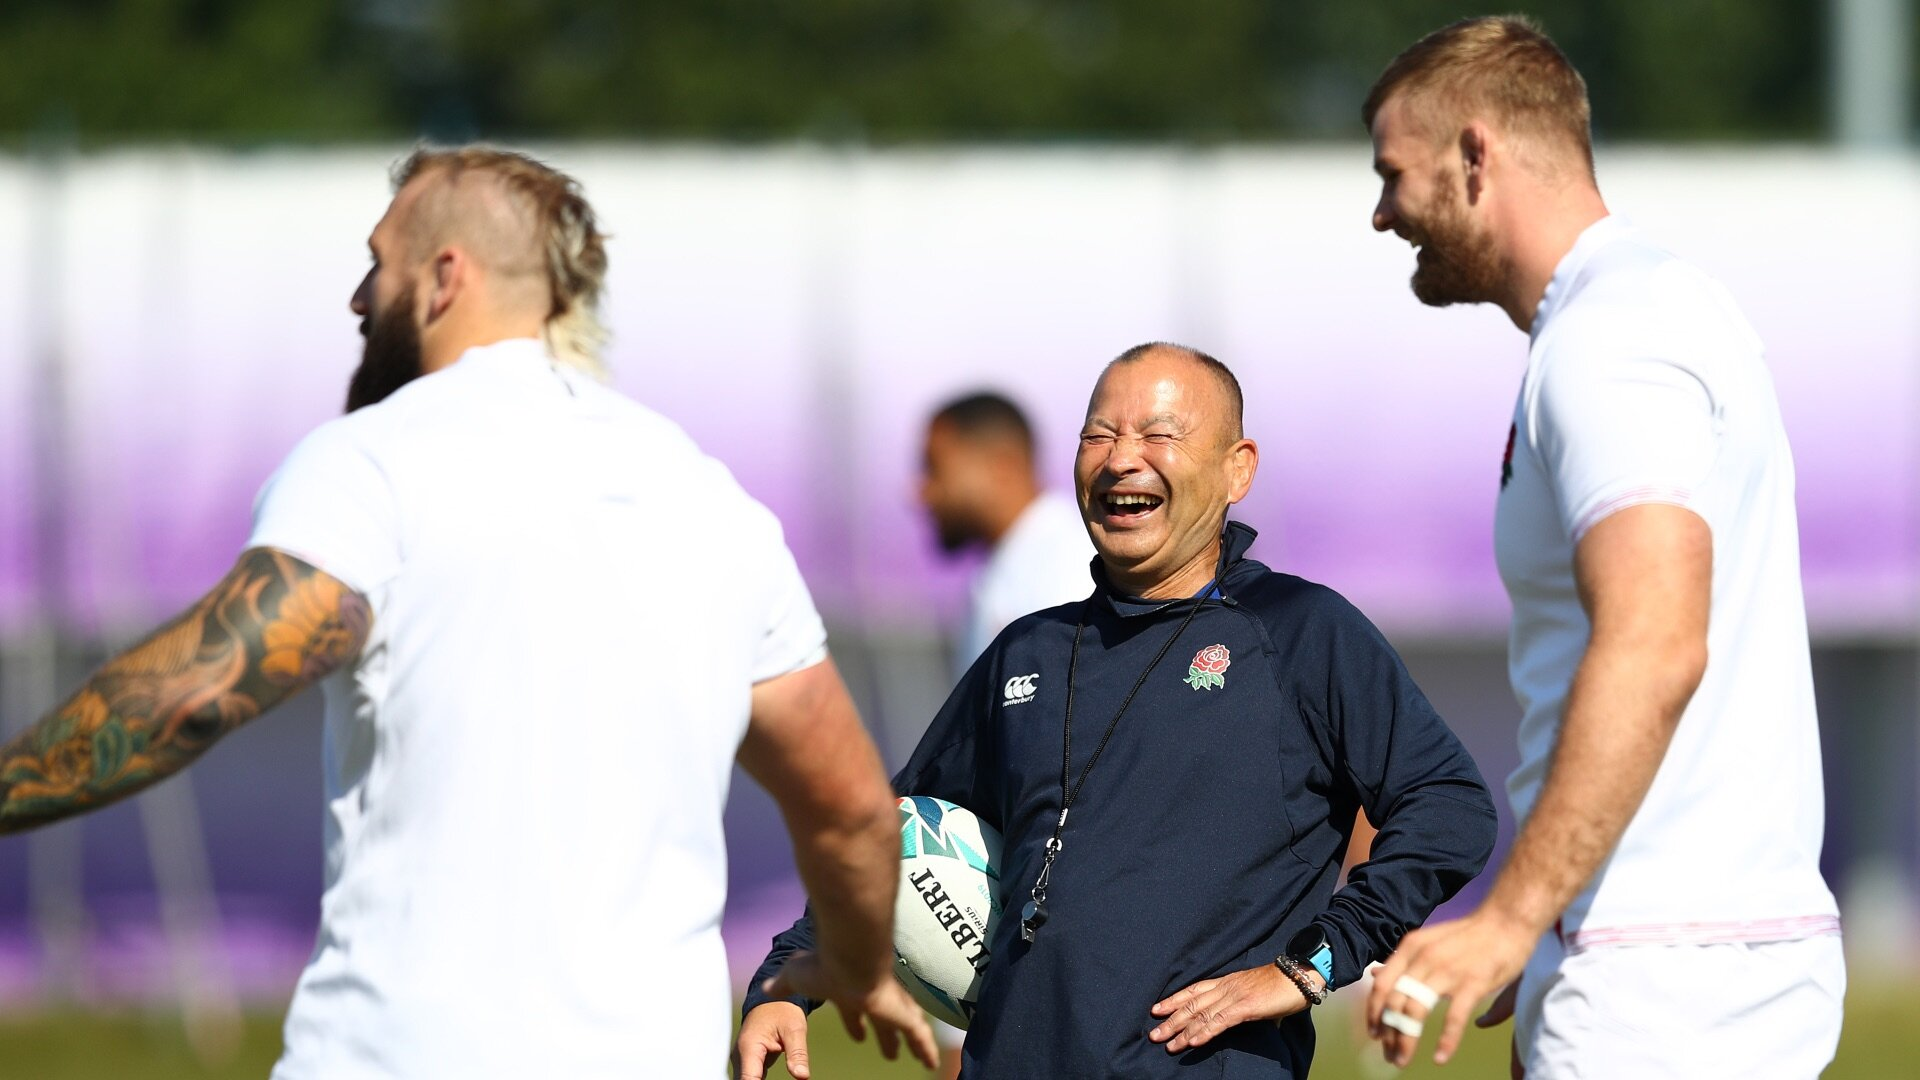 Clive Woodward slams 'insensitive' timing of Eddie Jones announcement